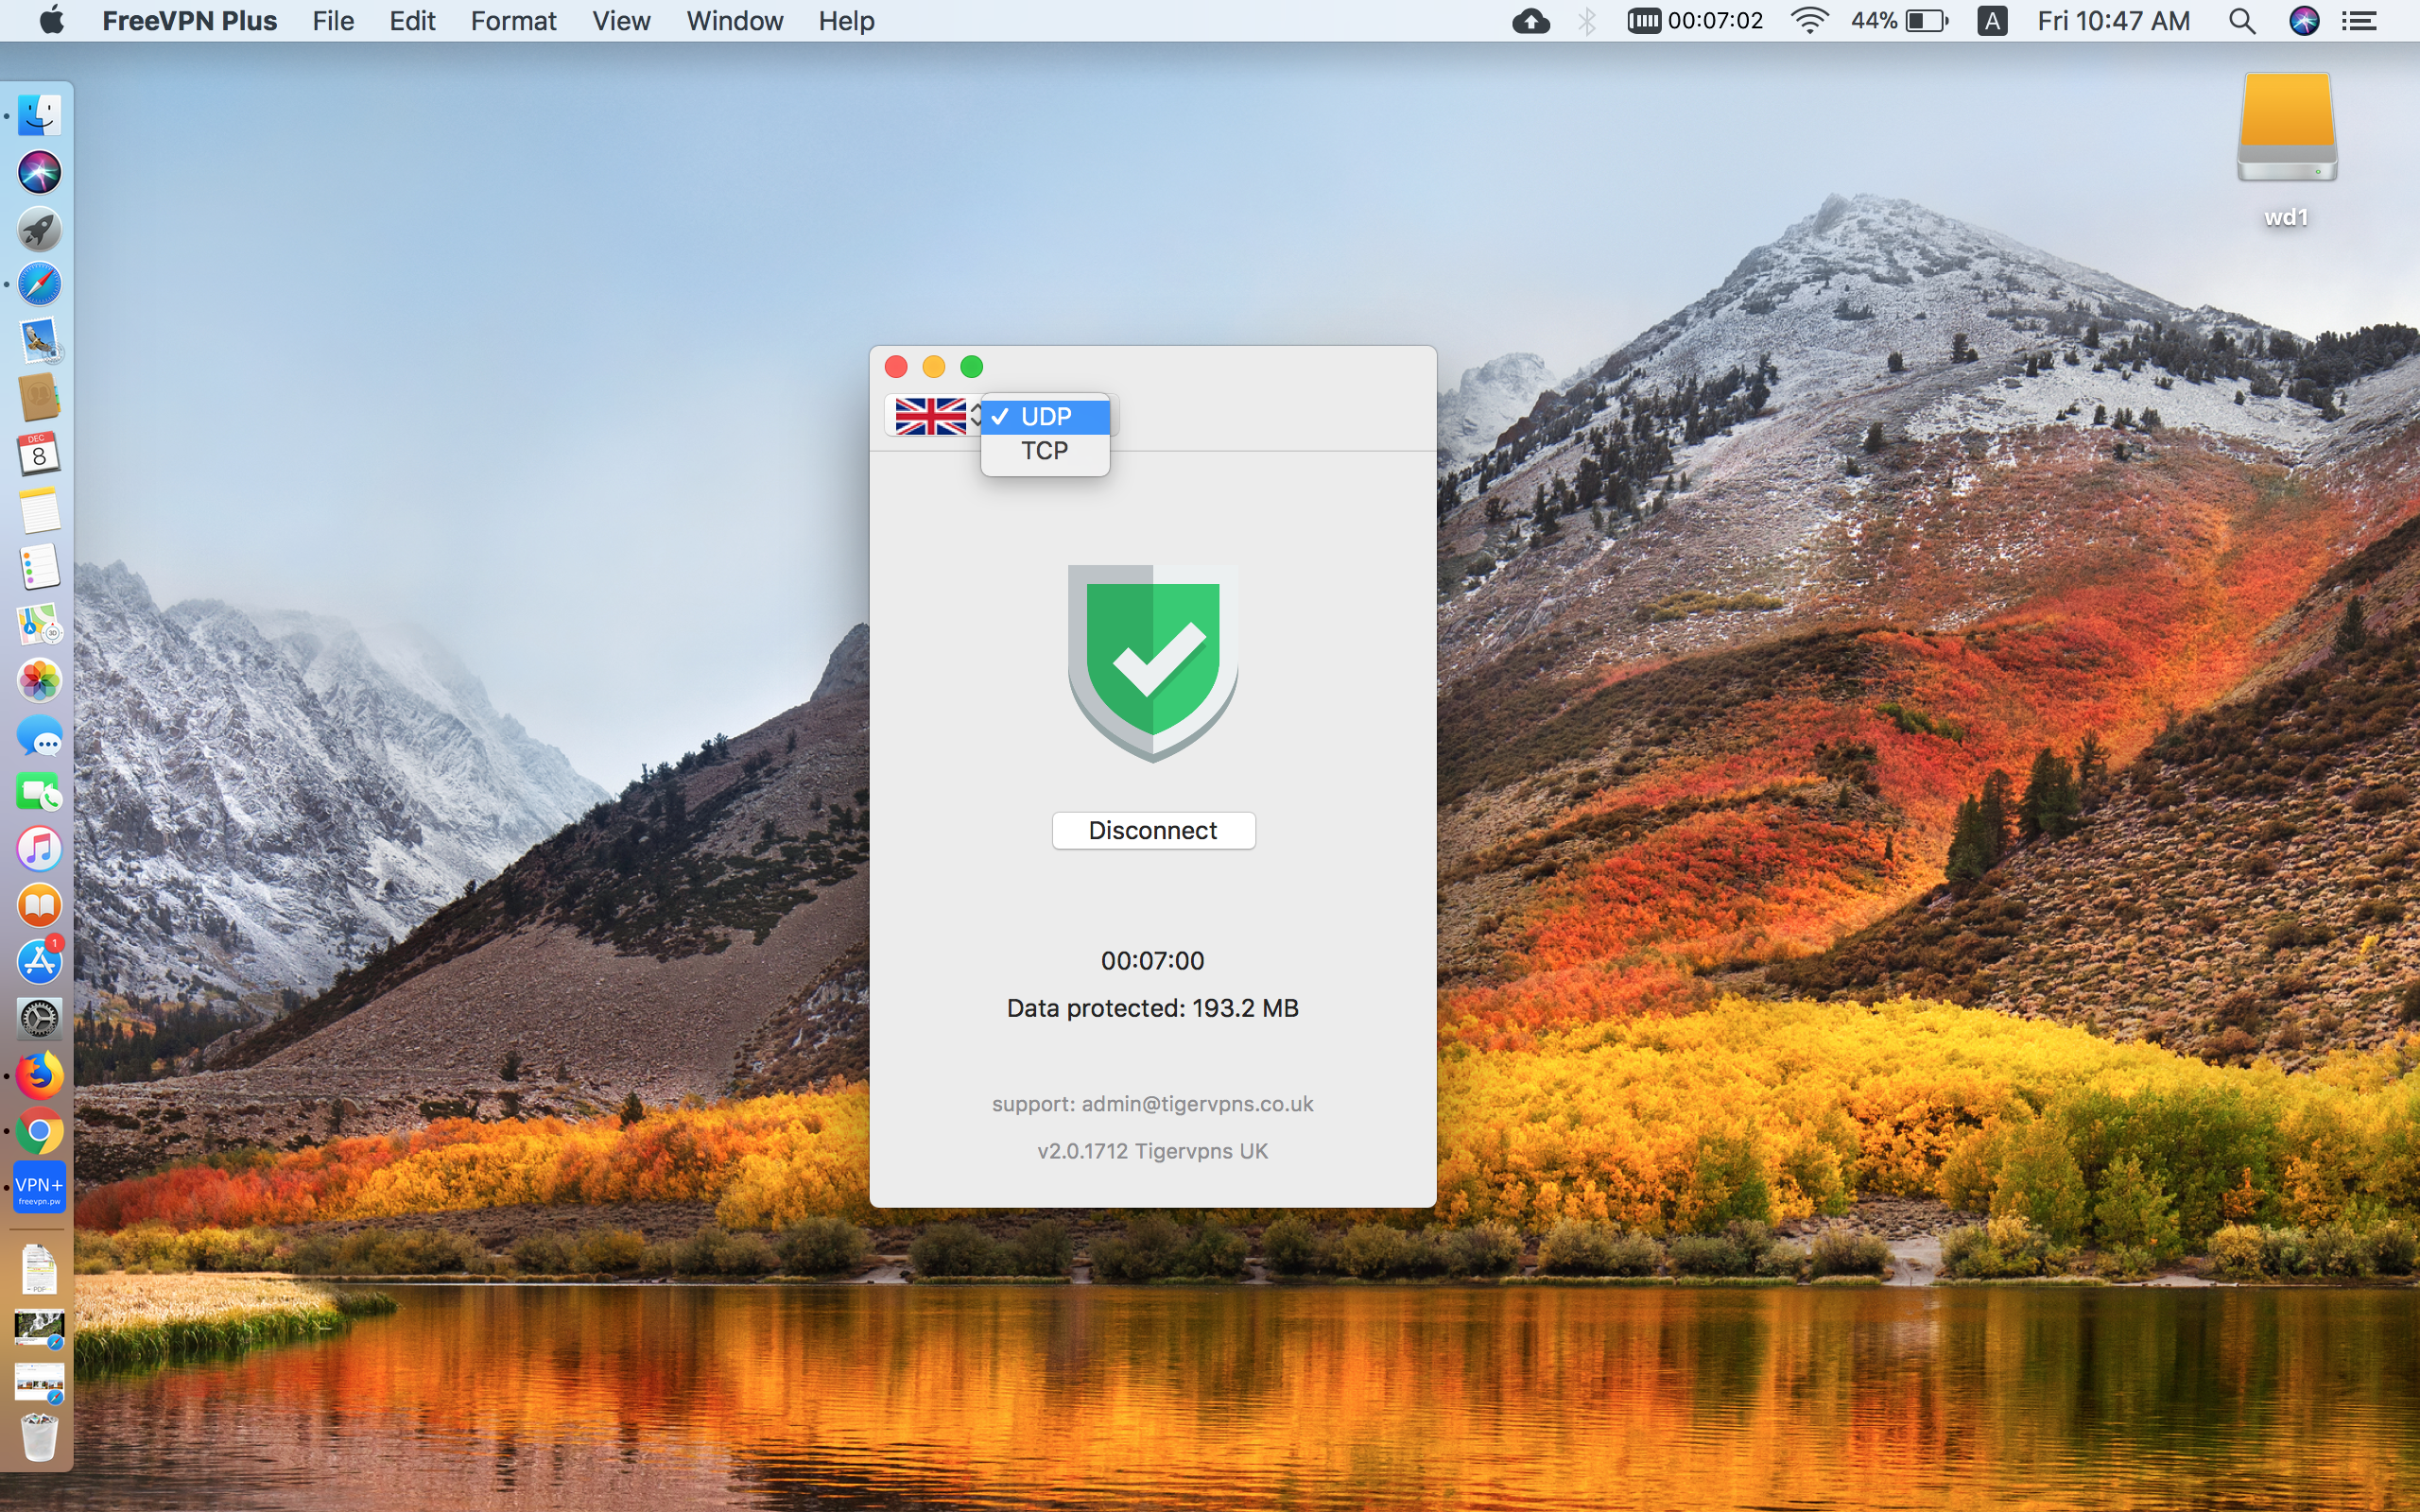 Get free VPN on all devices  Keep safe and private online  Download